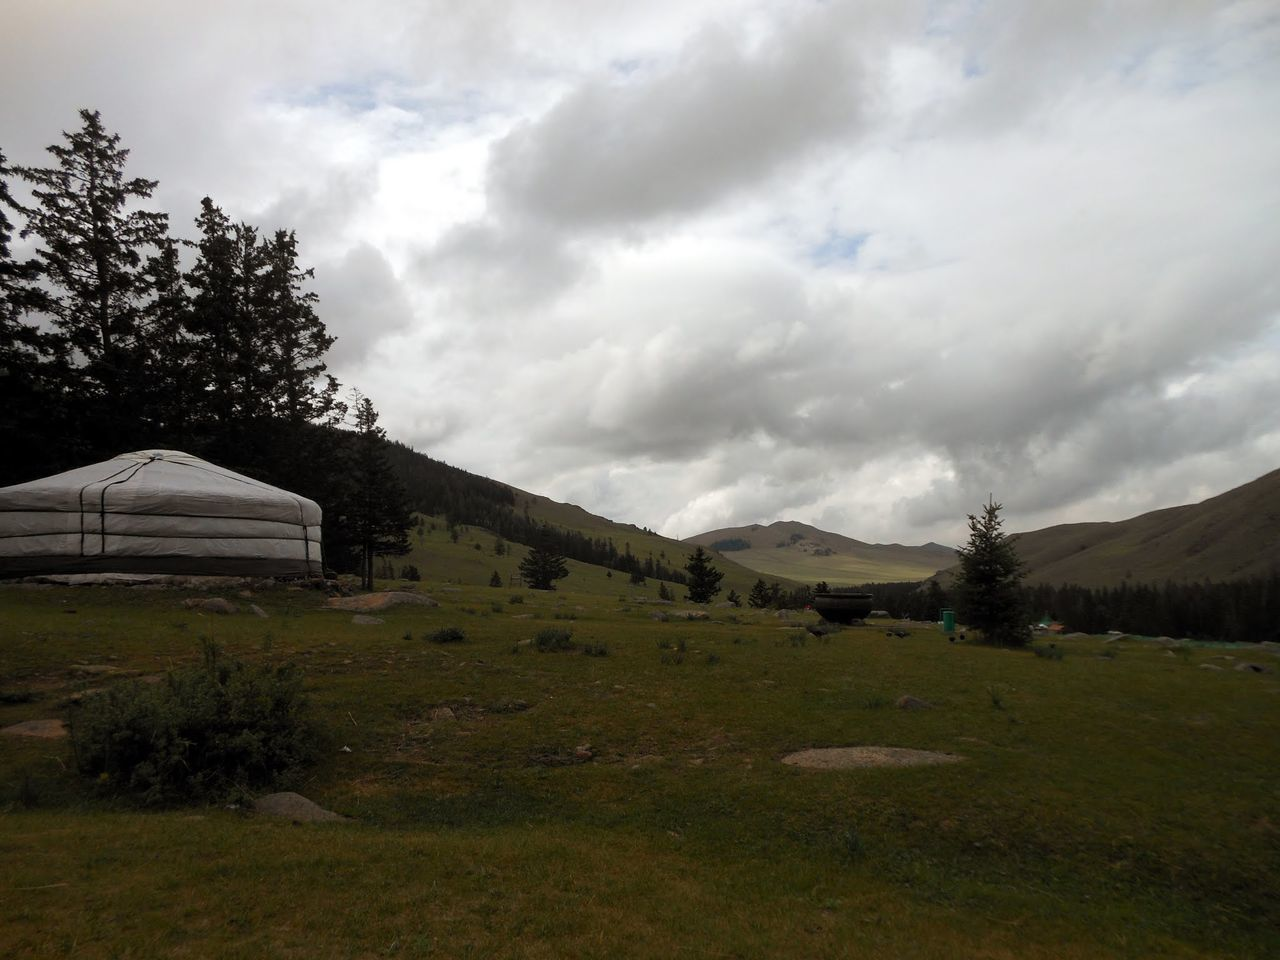 landscape, sky, tranquility, grass, nature, scenics, built structure, tranquil scene, tree, outdoors, cloud - sky, no people, field, beauty in nature, day, architecture, mountain, building exterior, scenery